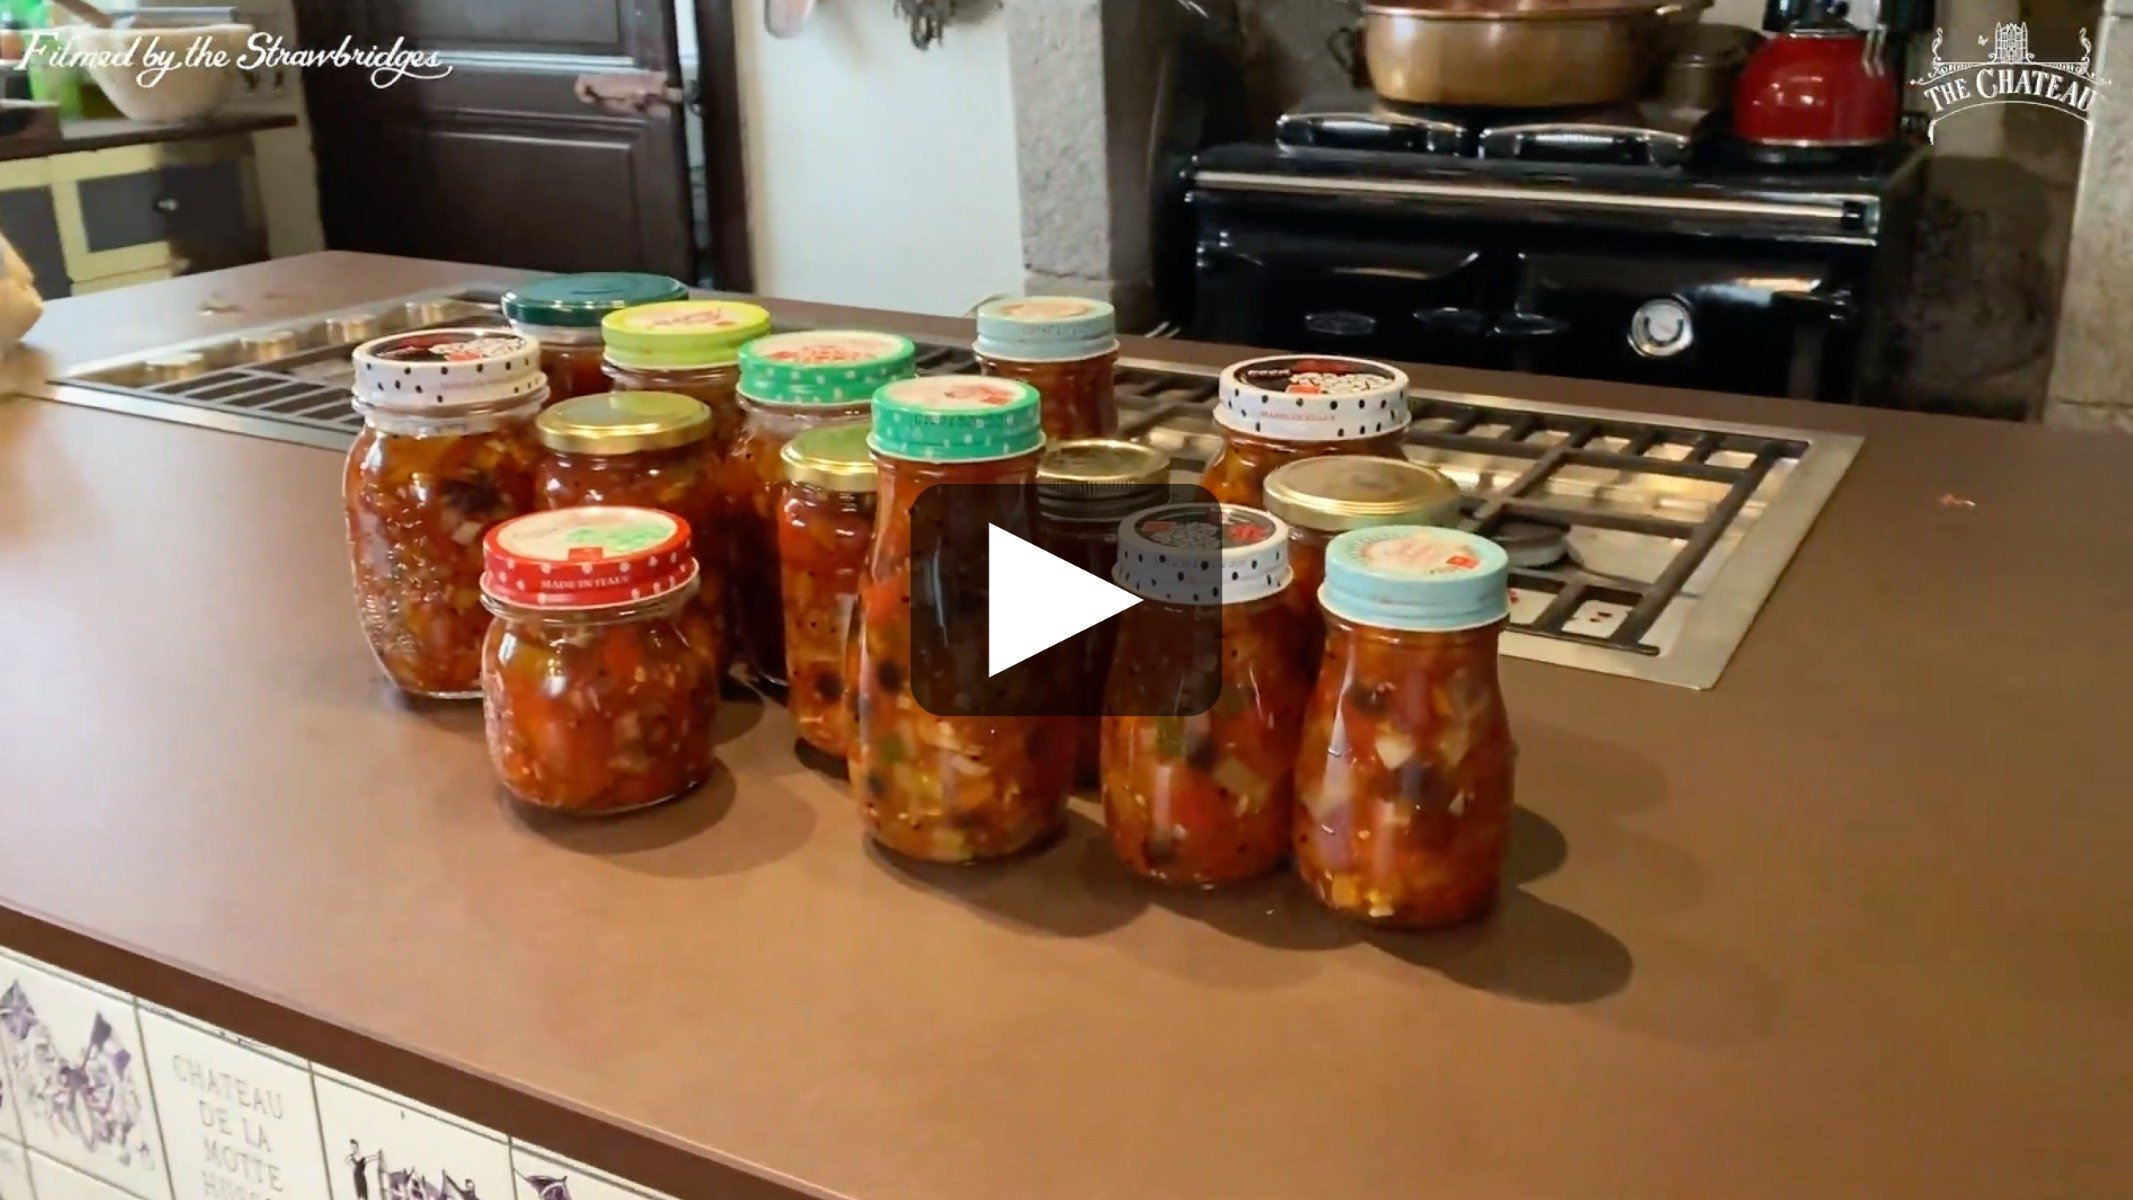 Video frame of jars of chutney, link to full video